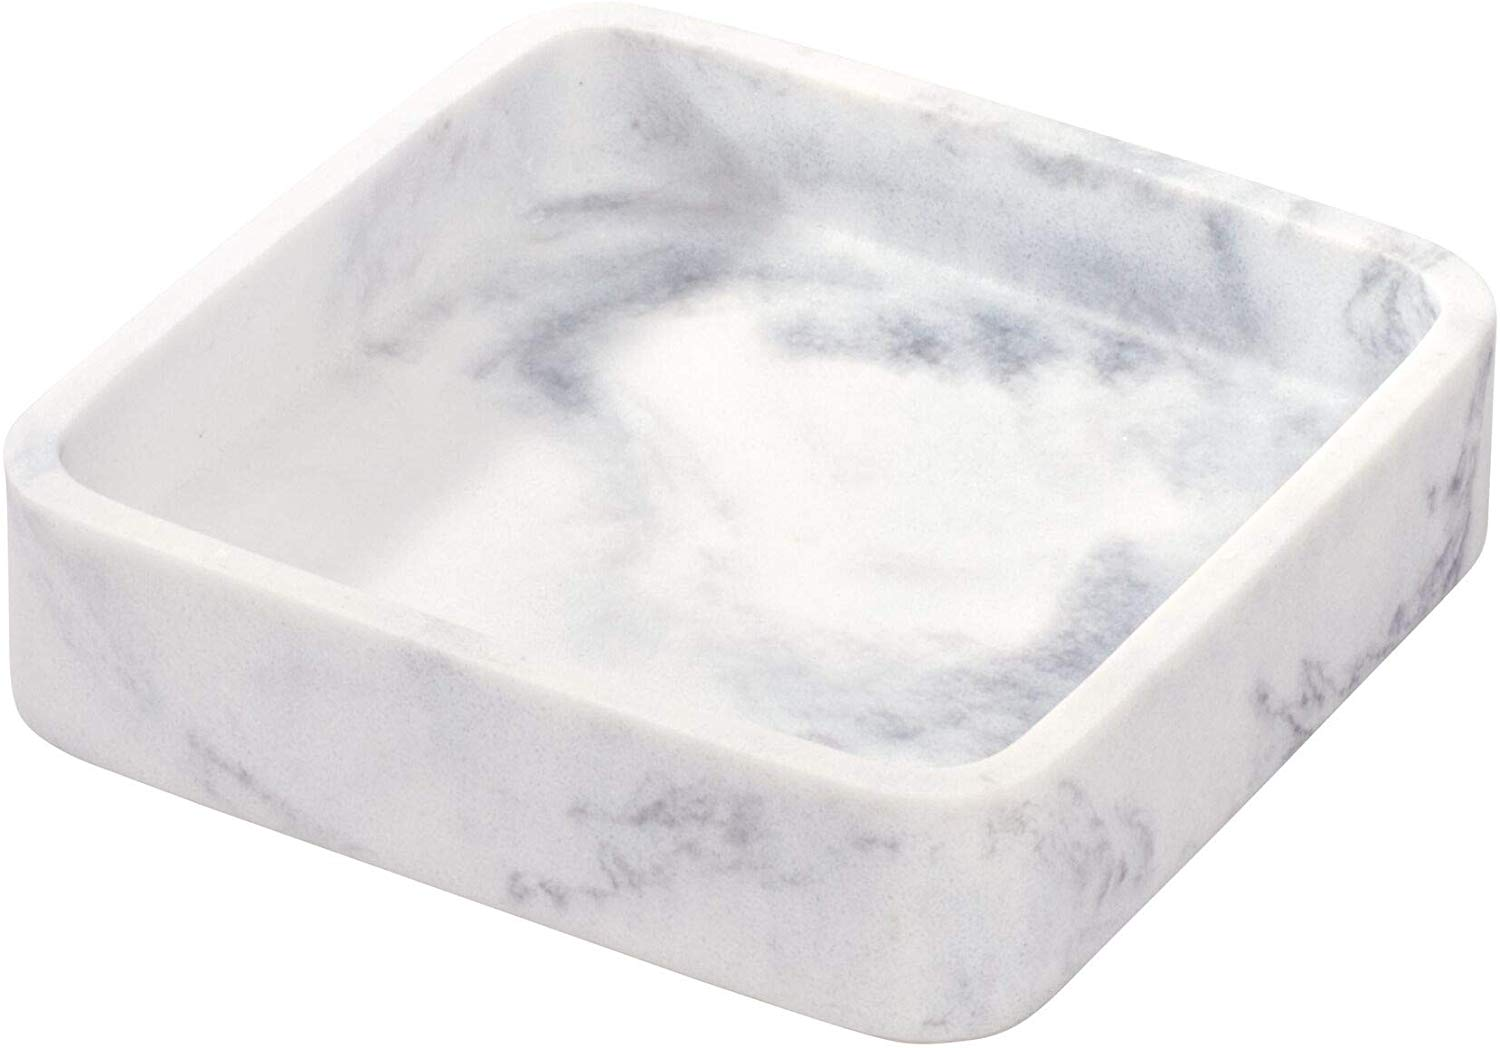 The Period Bath Supply Company A Division Of Historic Houseparts Inc Soap Dishes And Dispensers Dakota Collection White Marble Resin Vanity Tray Or Soap Dish